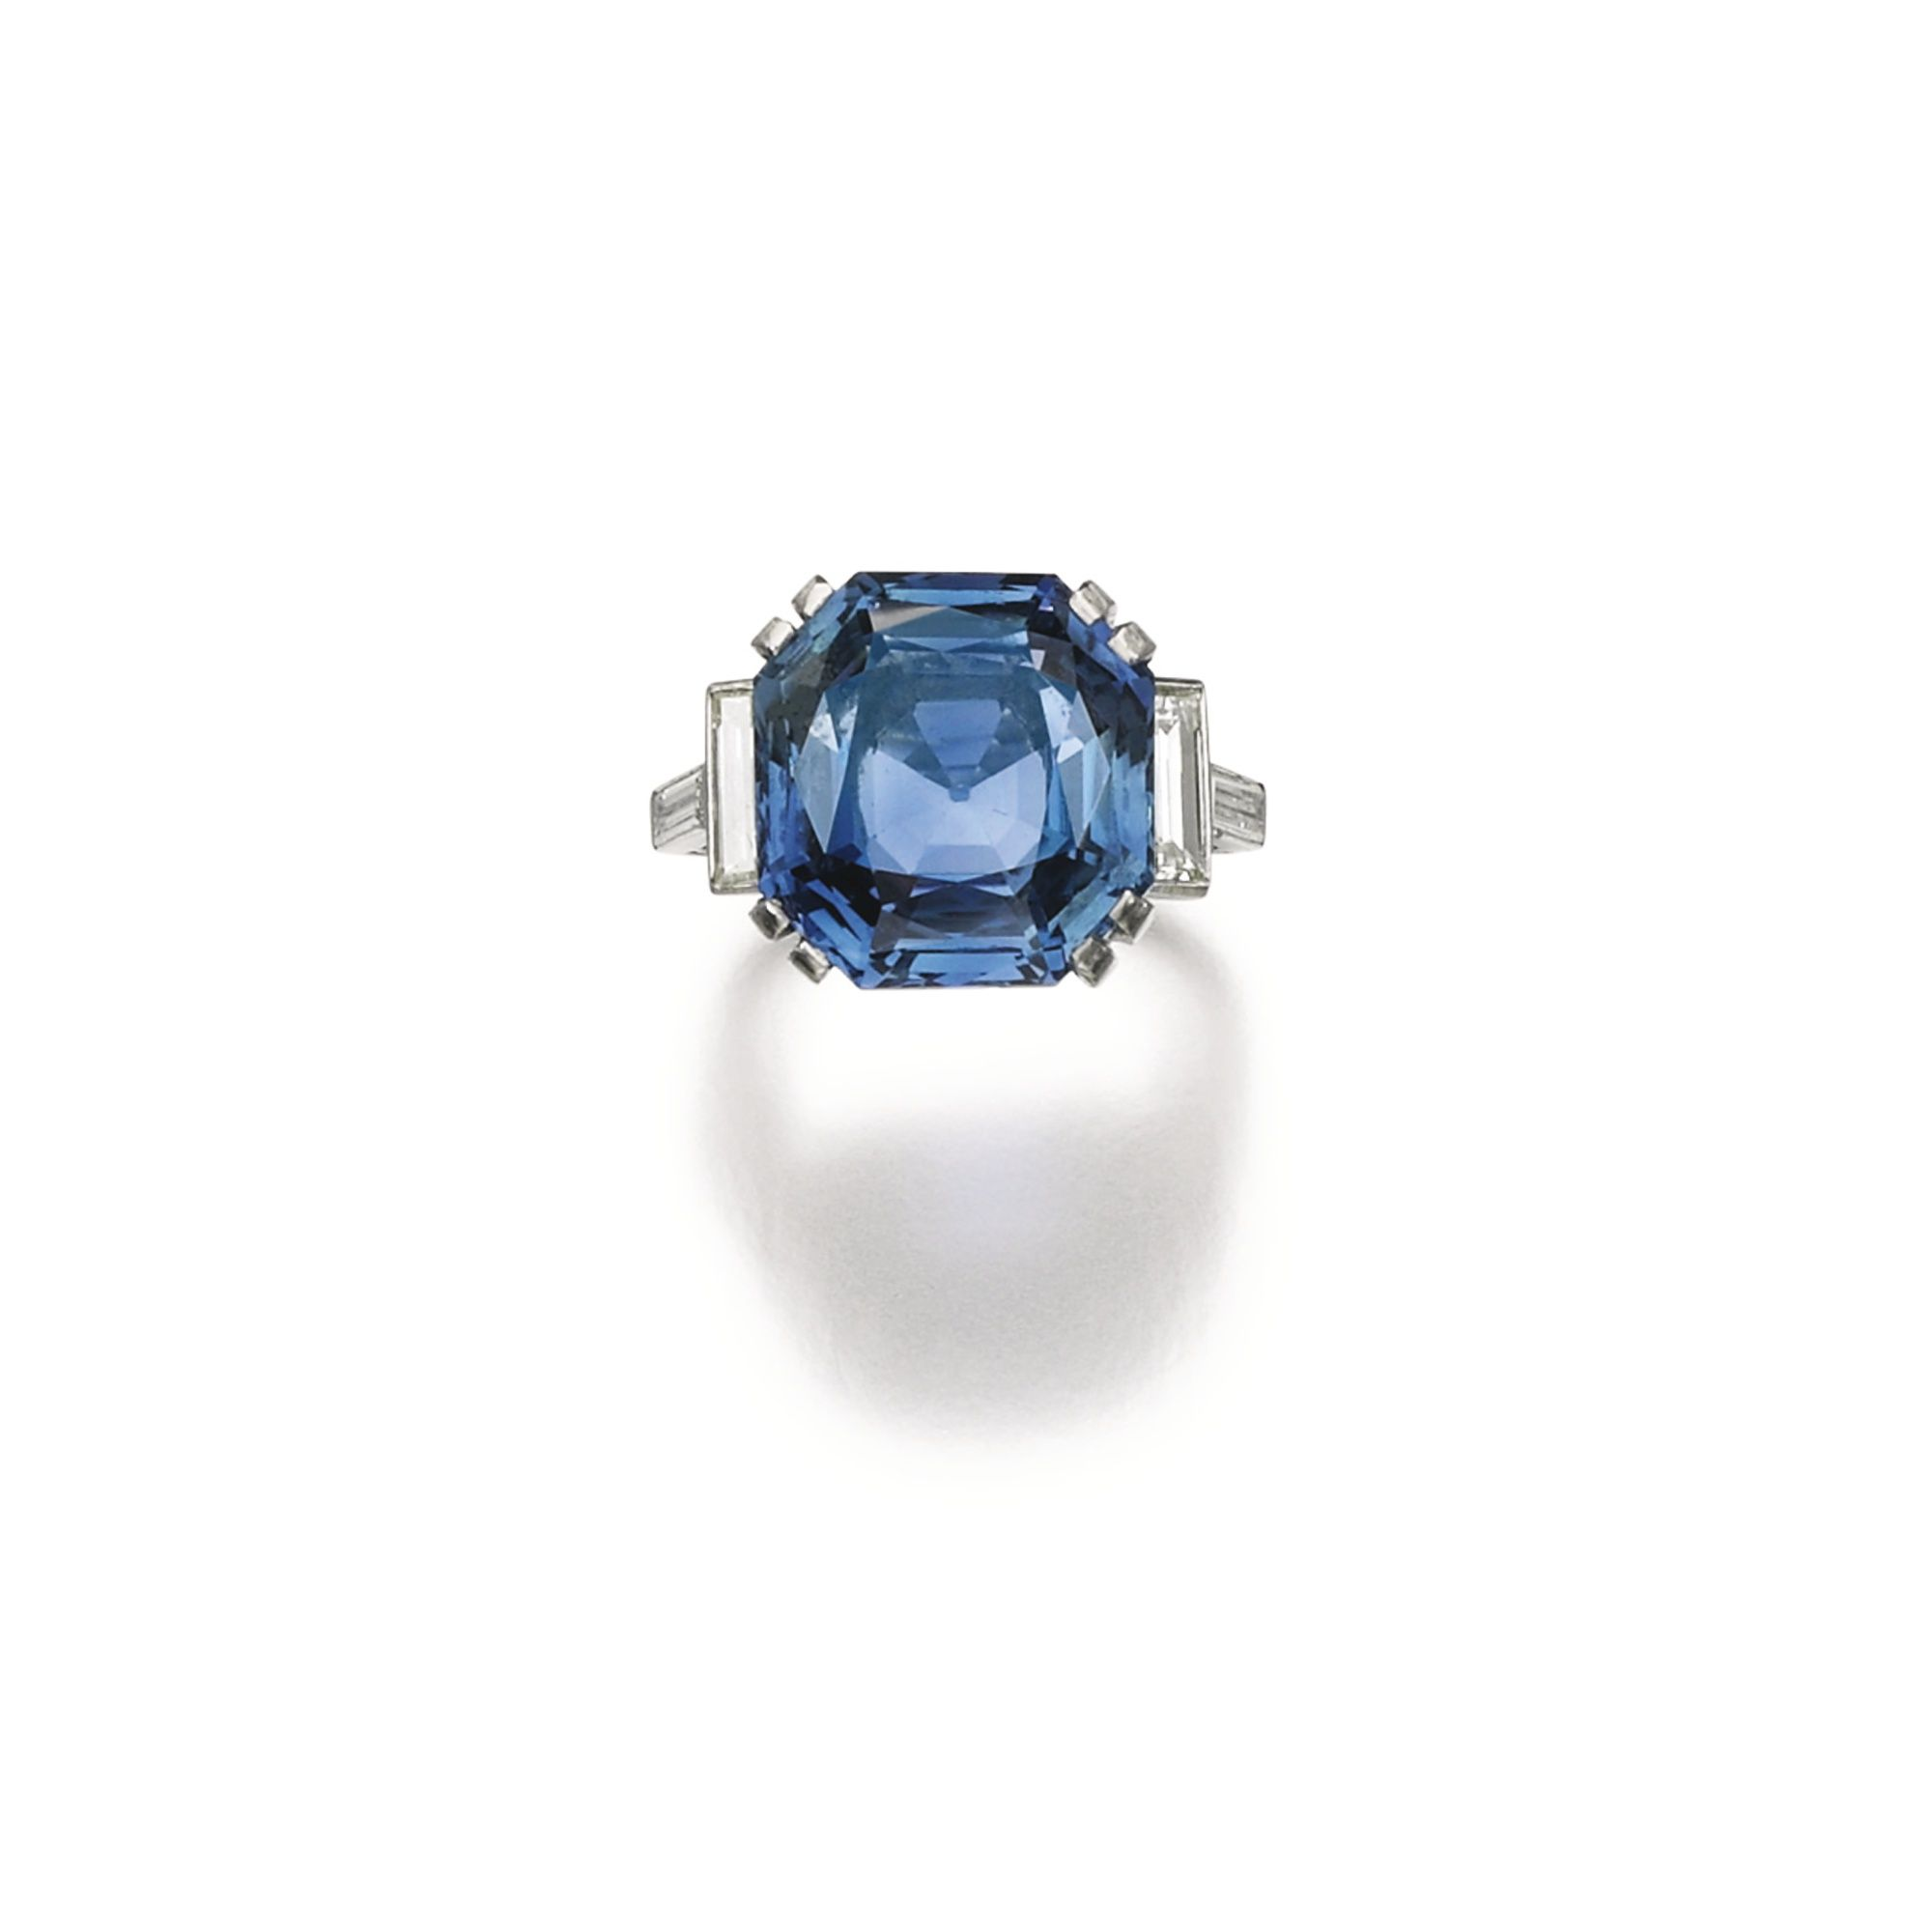 aron operandi jewels pin moda hirsch at ring baguette sapphire